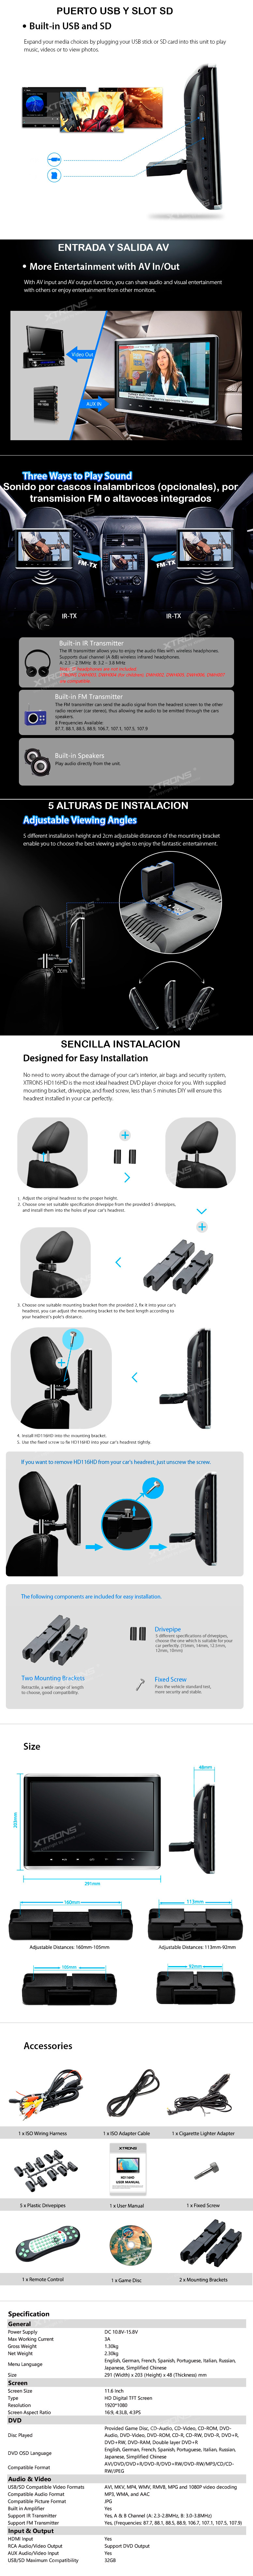 Exclusivecarauto 116 Ips Screen Headrest Dvd Hdmi Av In Out Nissan Monitor Wiring Harness Features